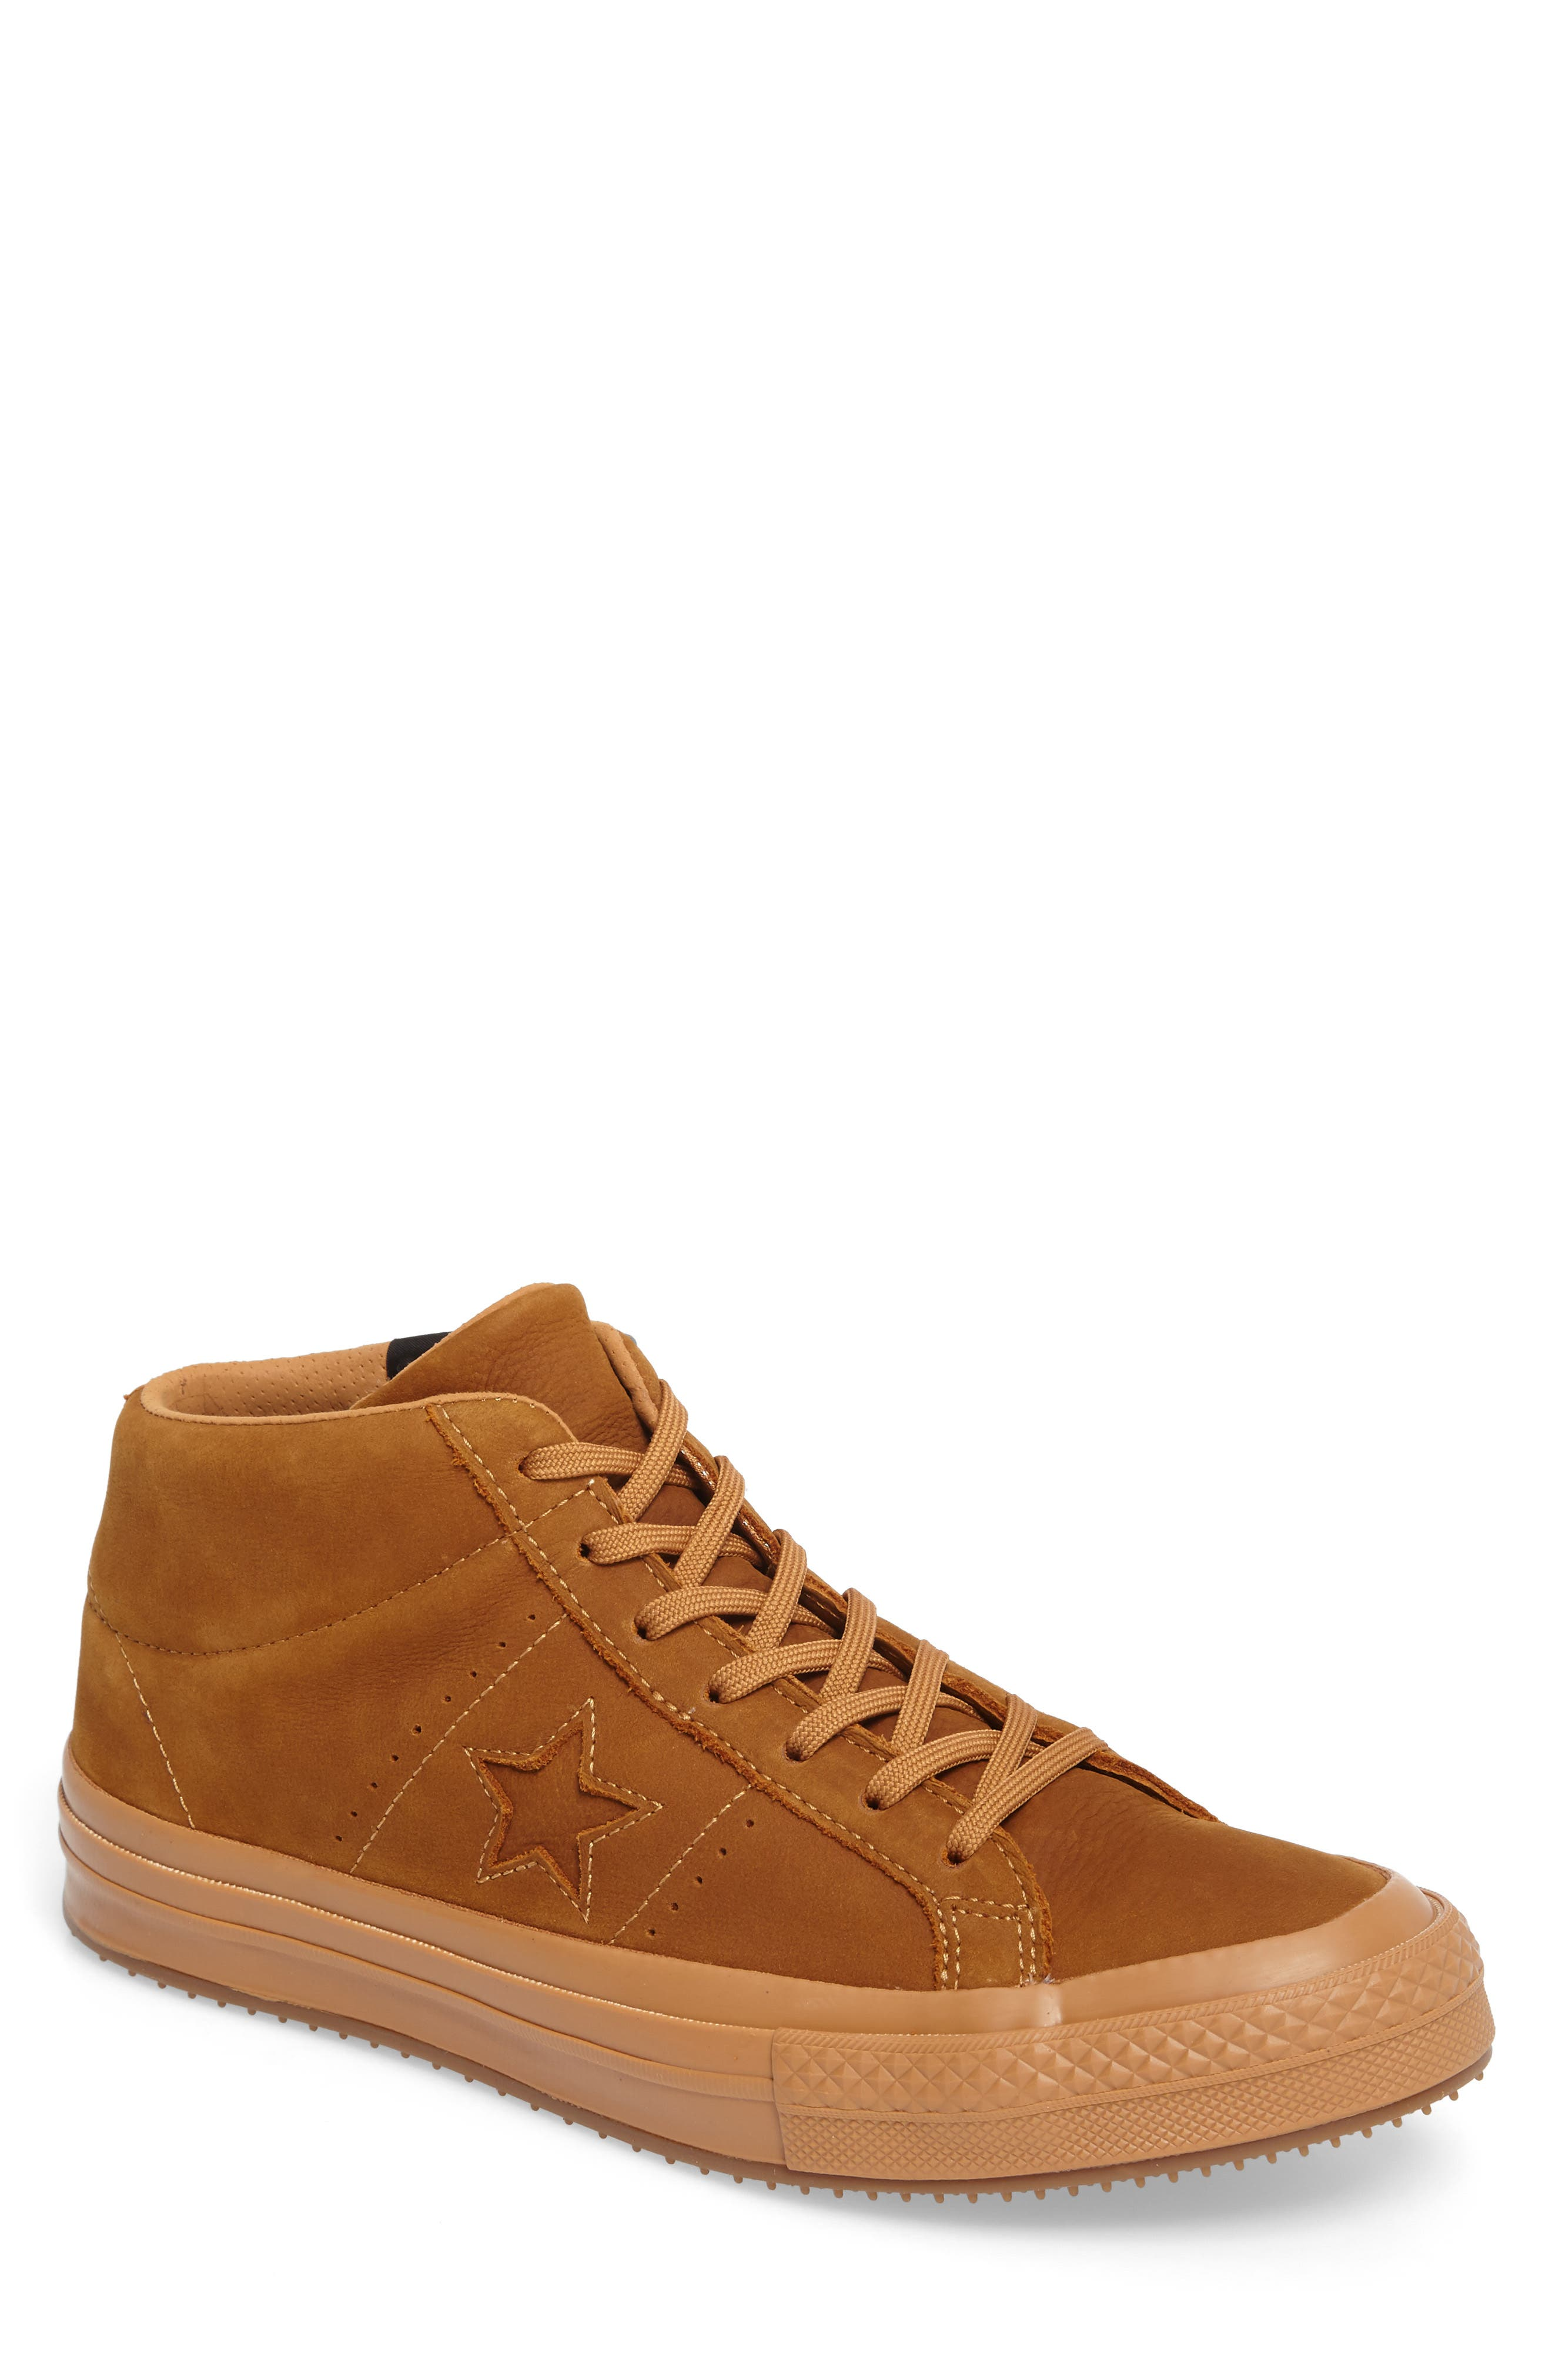 One Star Mid Sneaker,                             Main thumbnail 3, color,